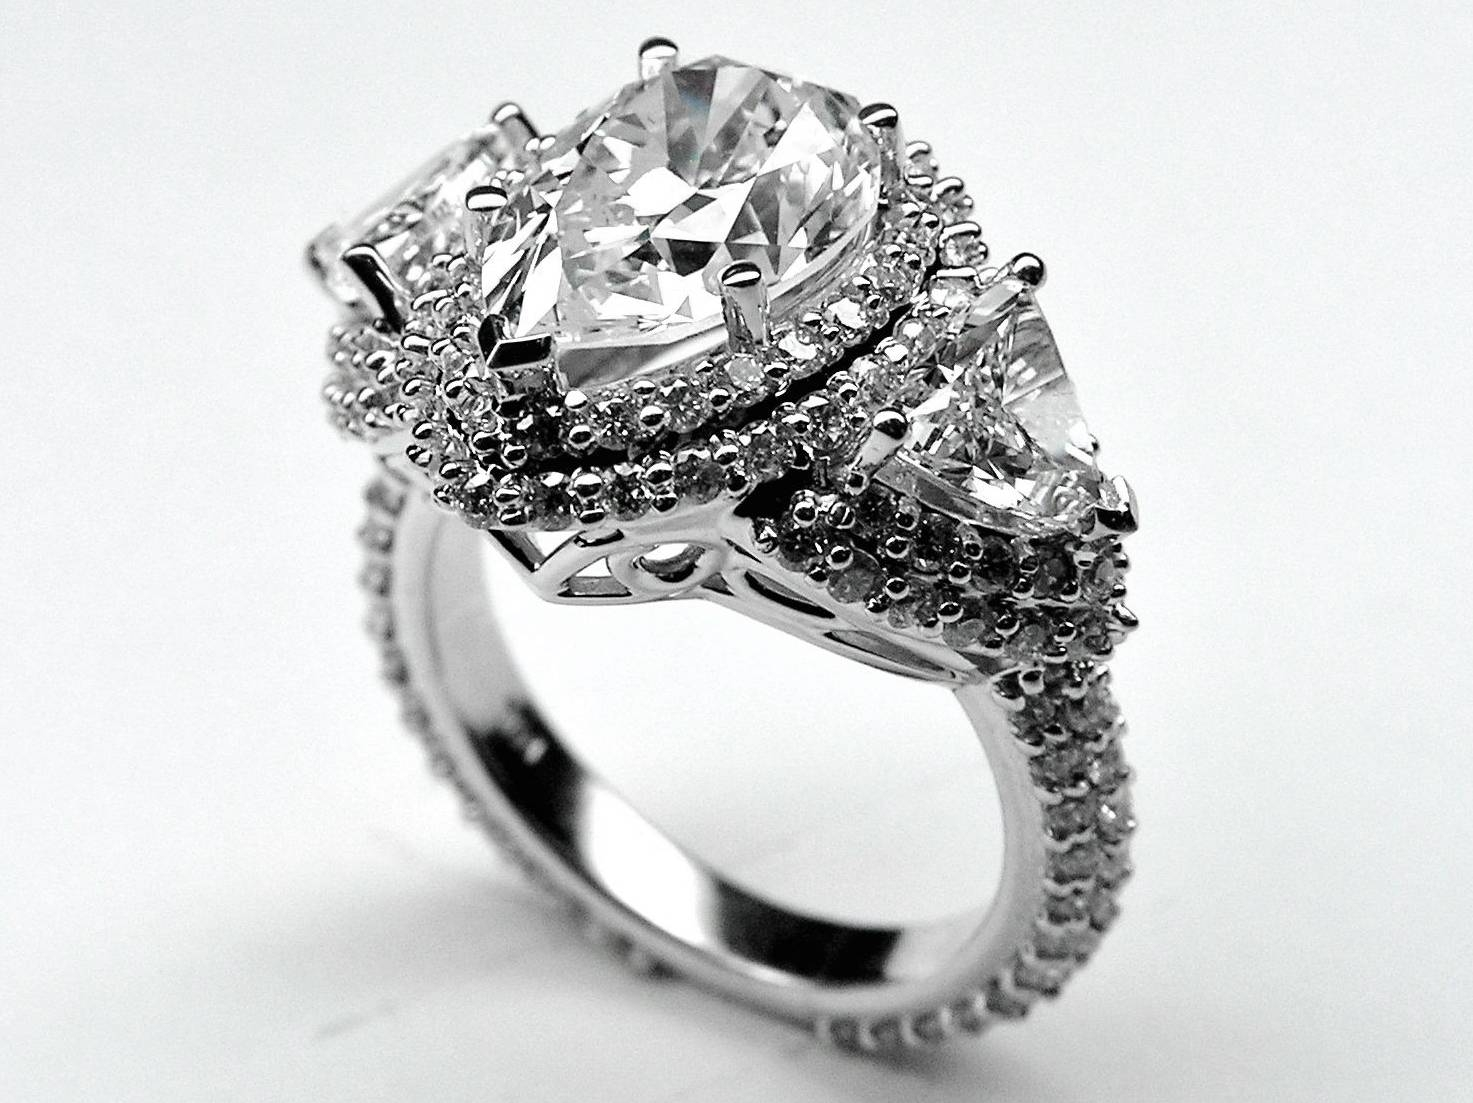 Engagement Ring  Pear Shape Diamond Vintage Engagement Ring Inside Pear Shaped Engagement Ring Settings (View 11 of 15)